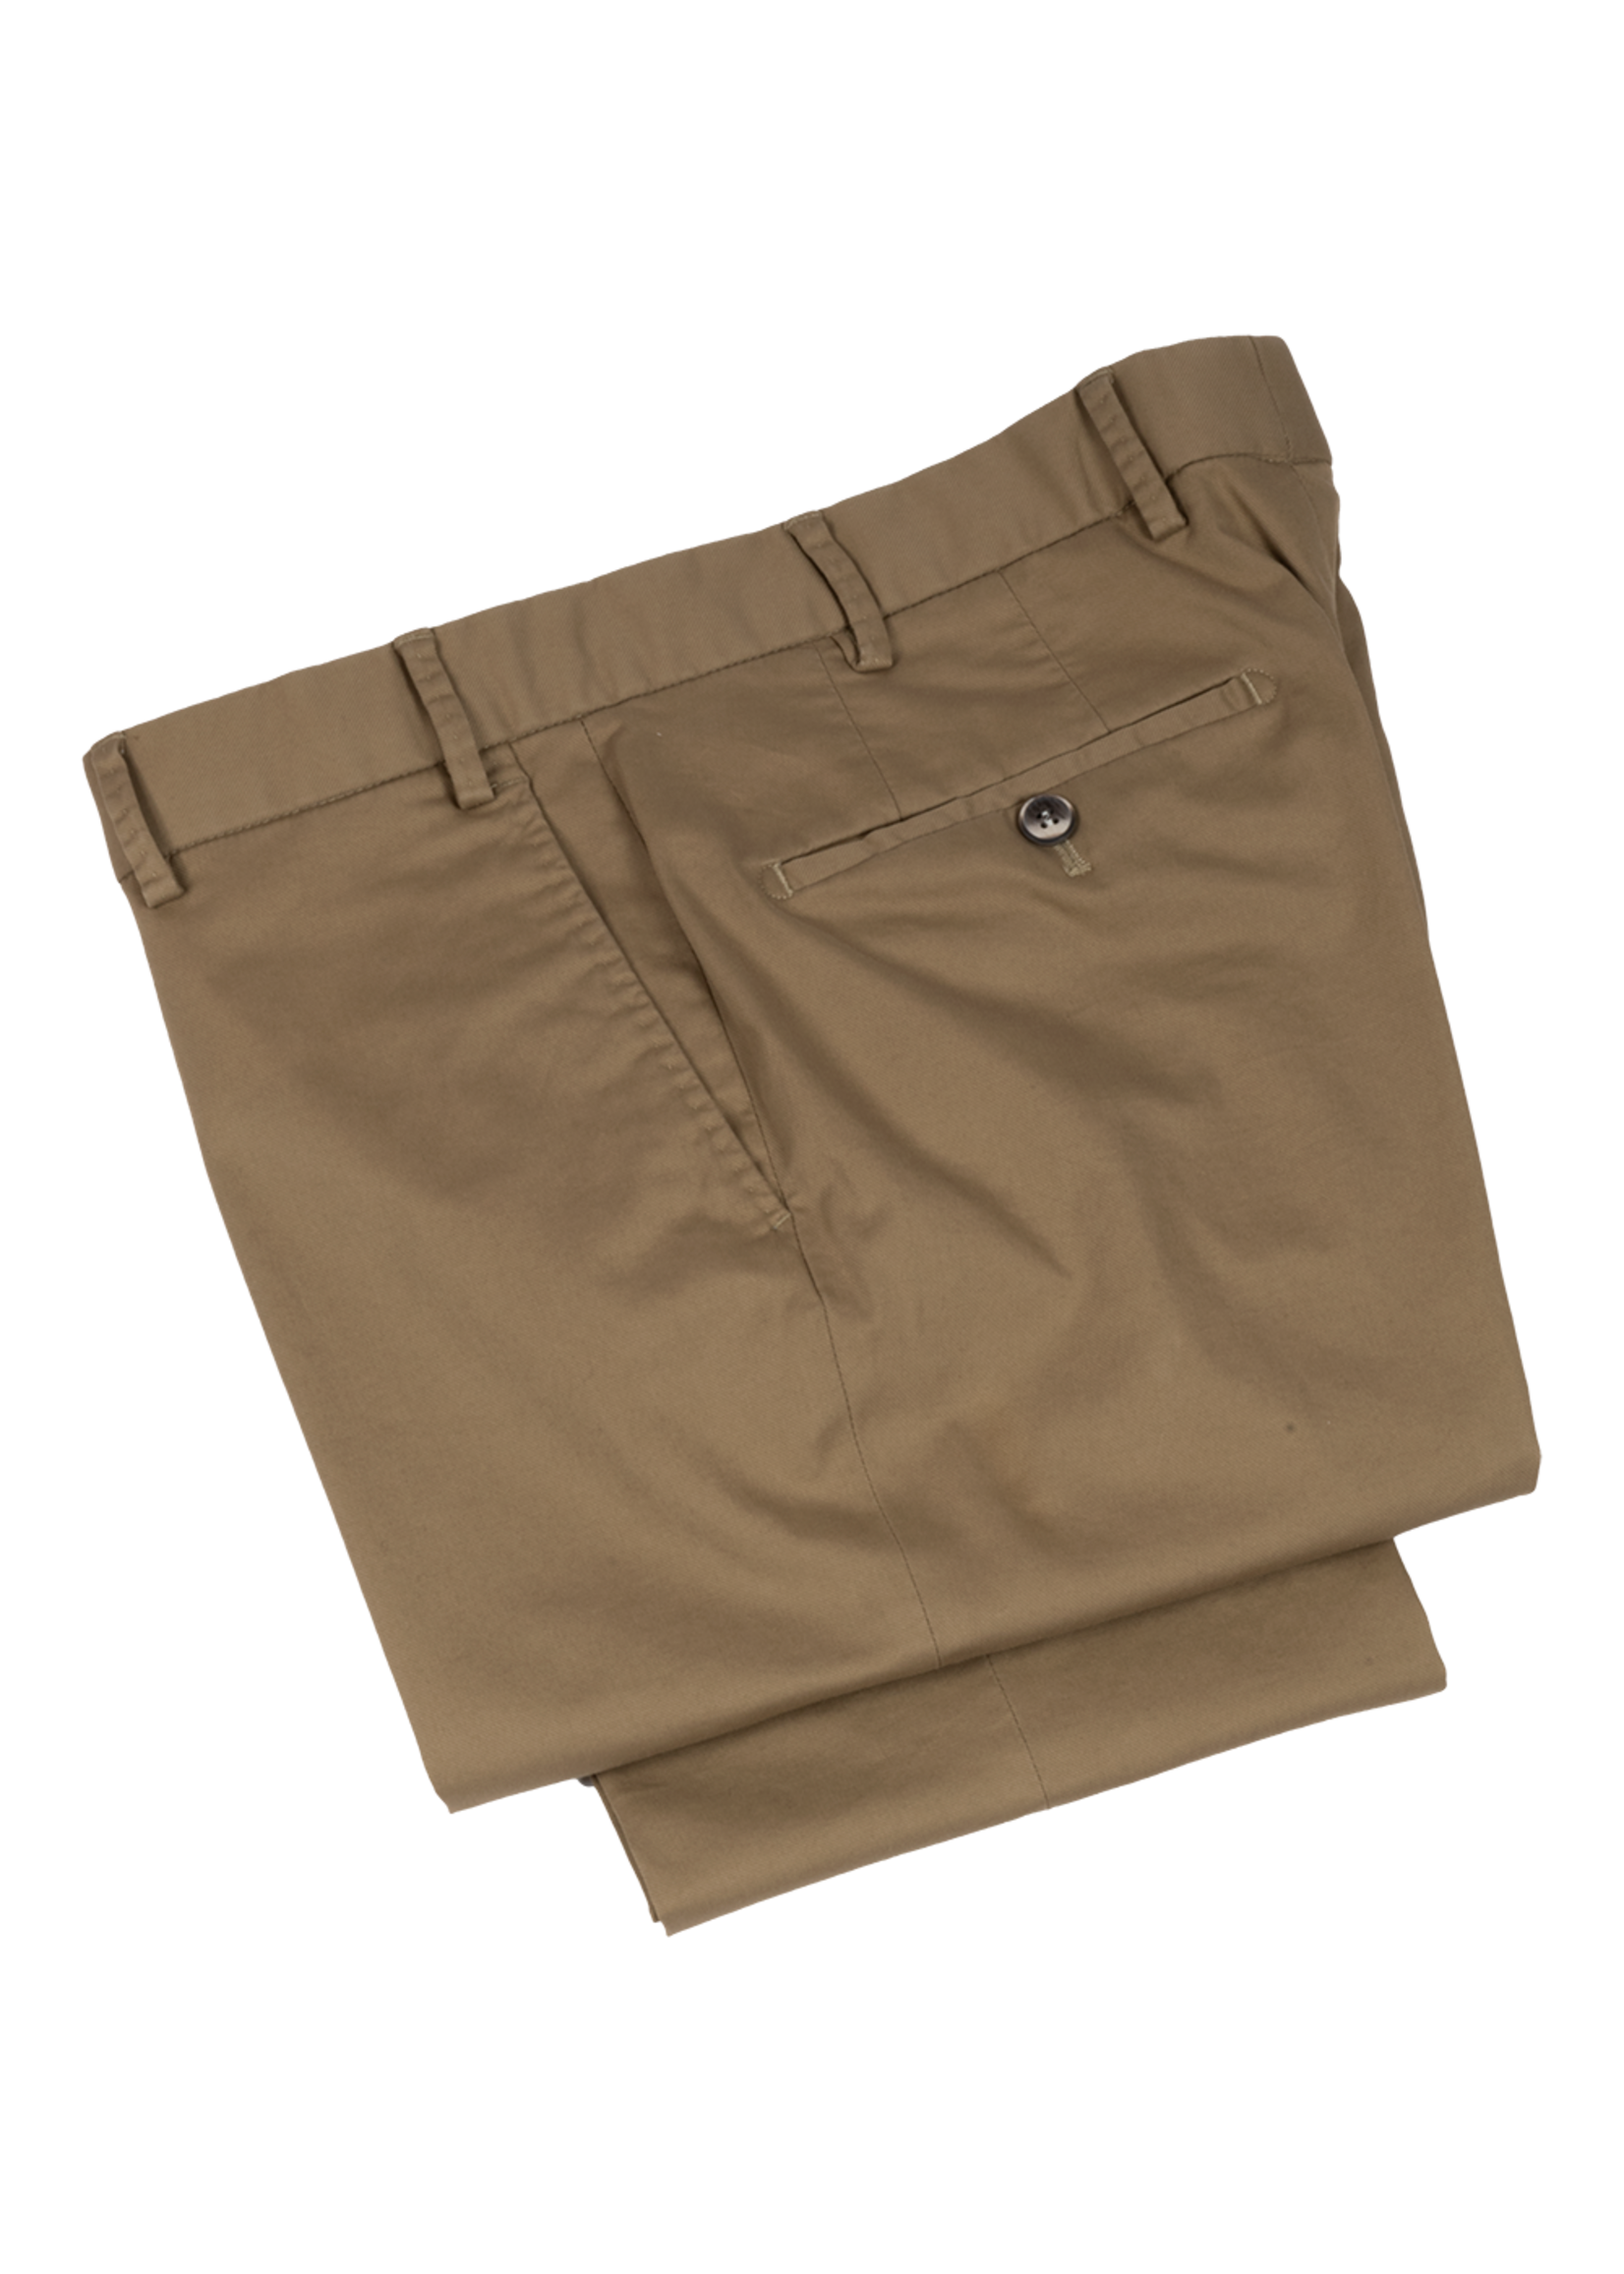 Hiltl Dayne Pant Tan Tricotine Twill Cotton by Hiltl